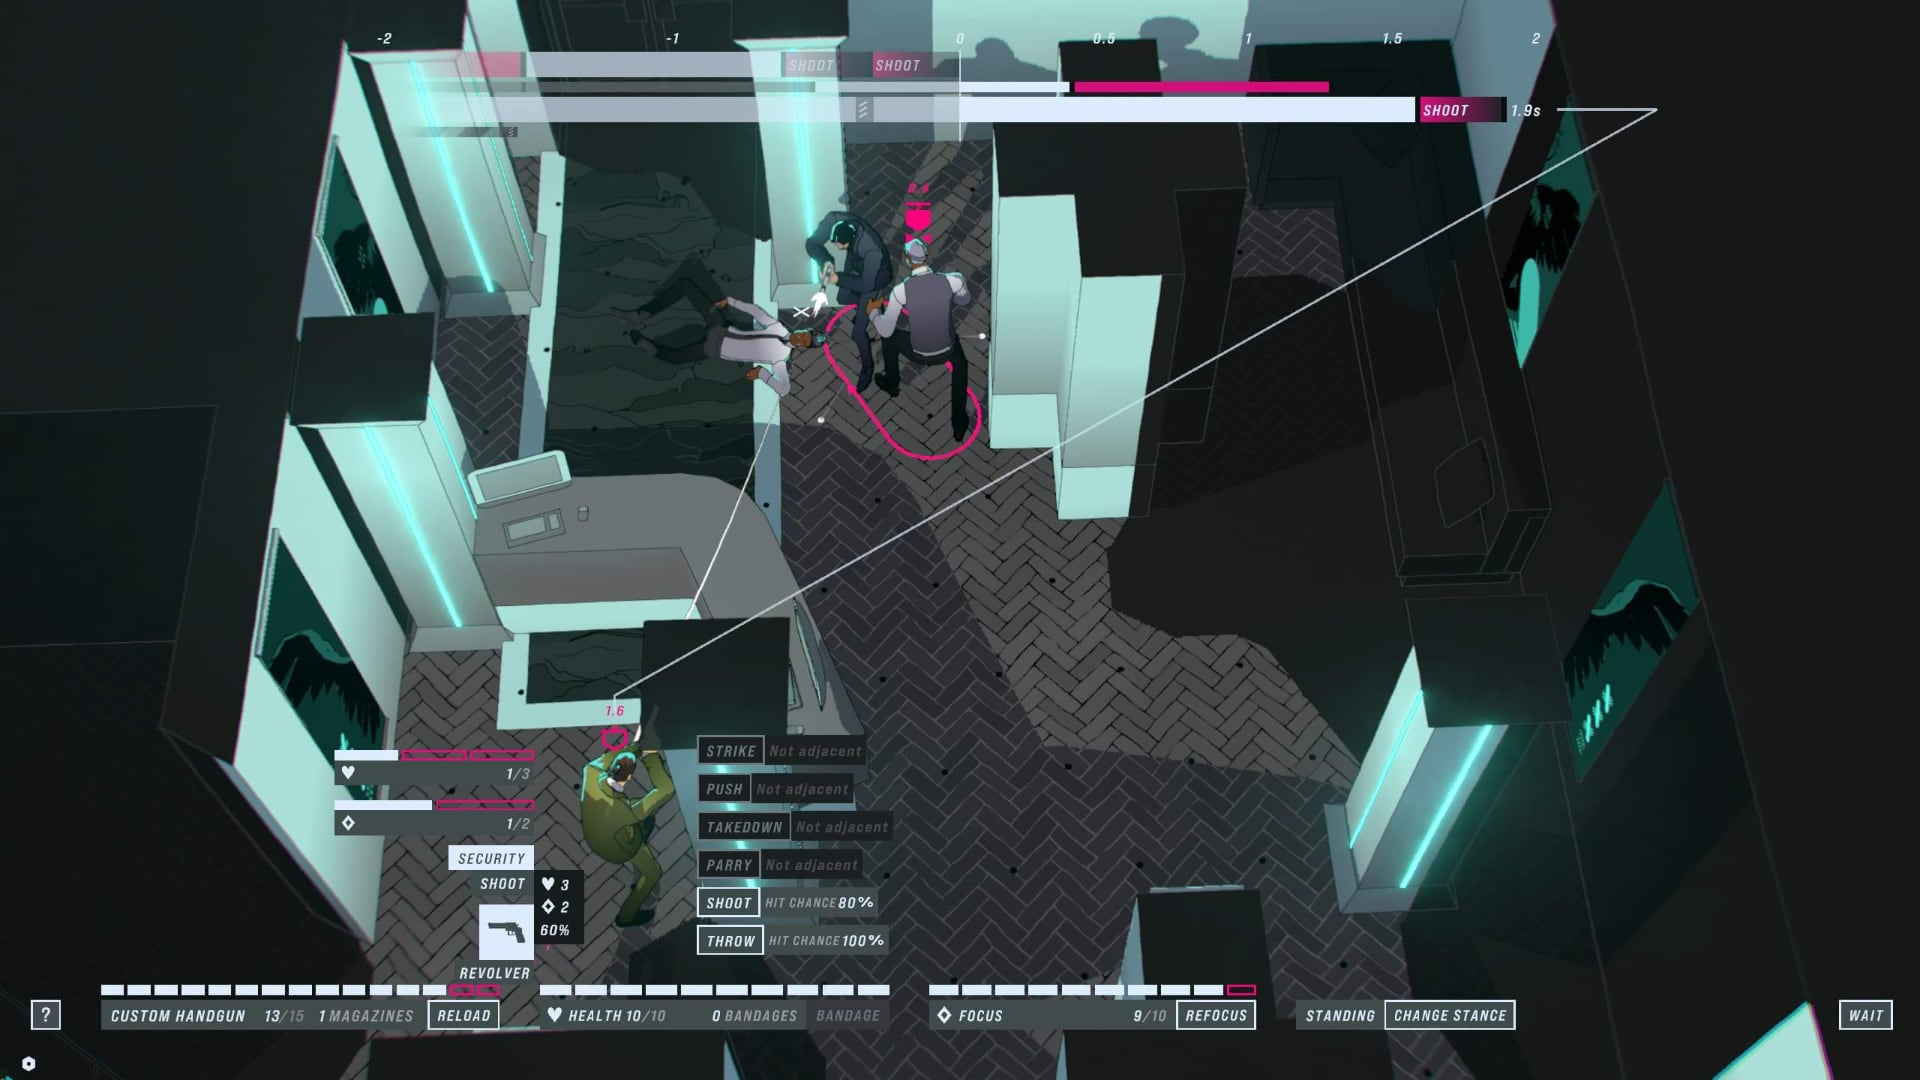 A screenshot of John Wick Hex, showing John Wick in a spot of trouble against a boss.